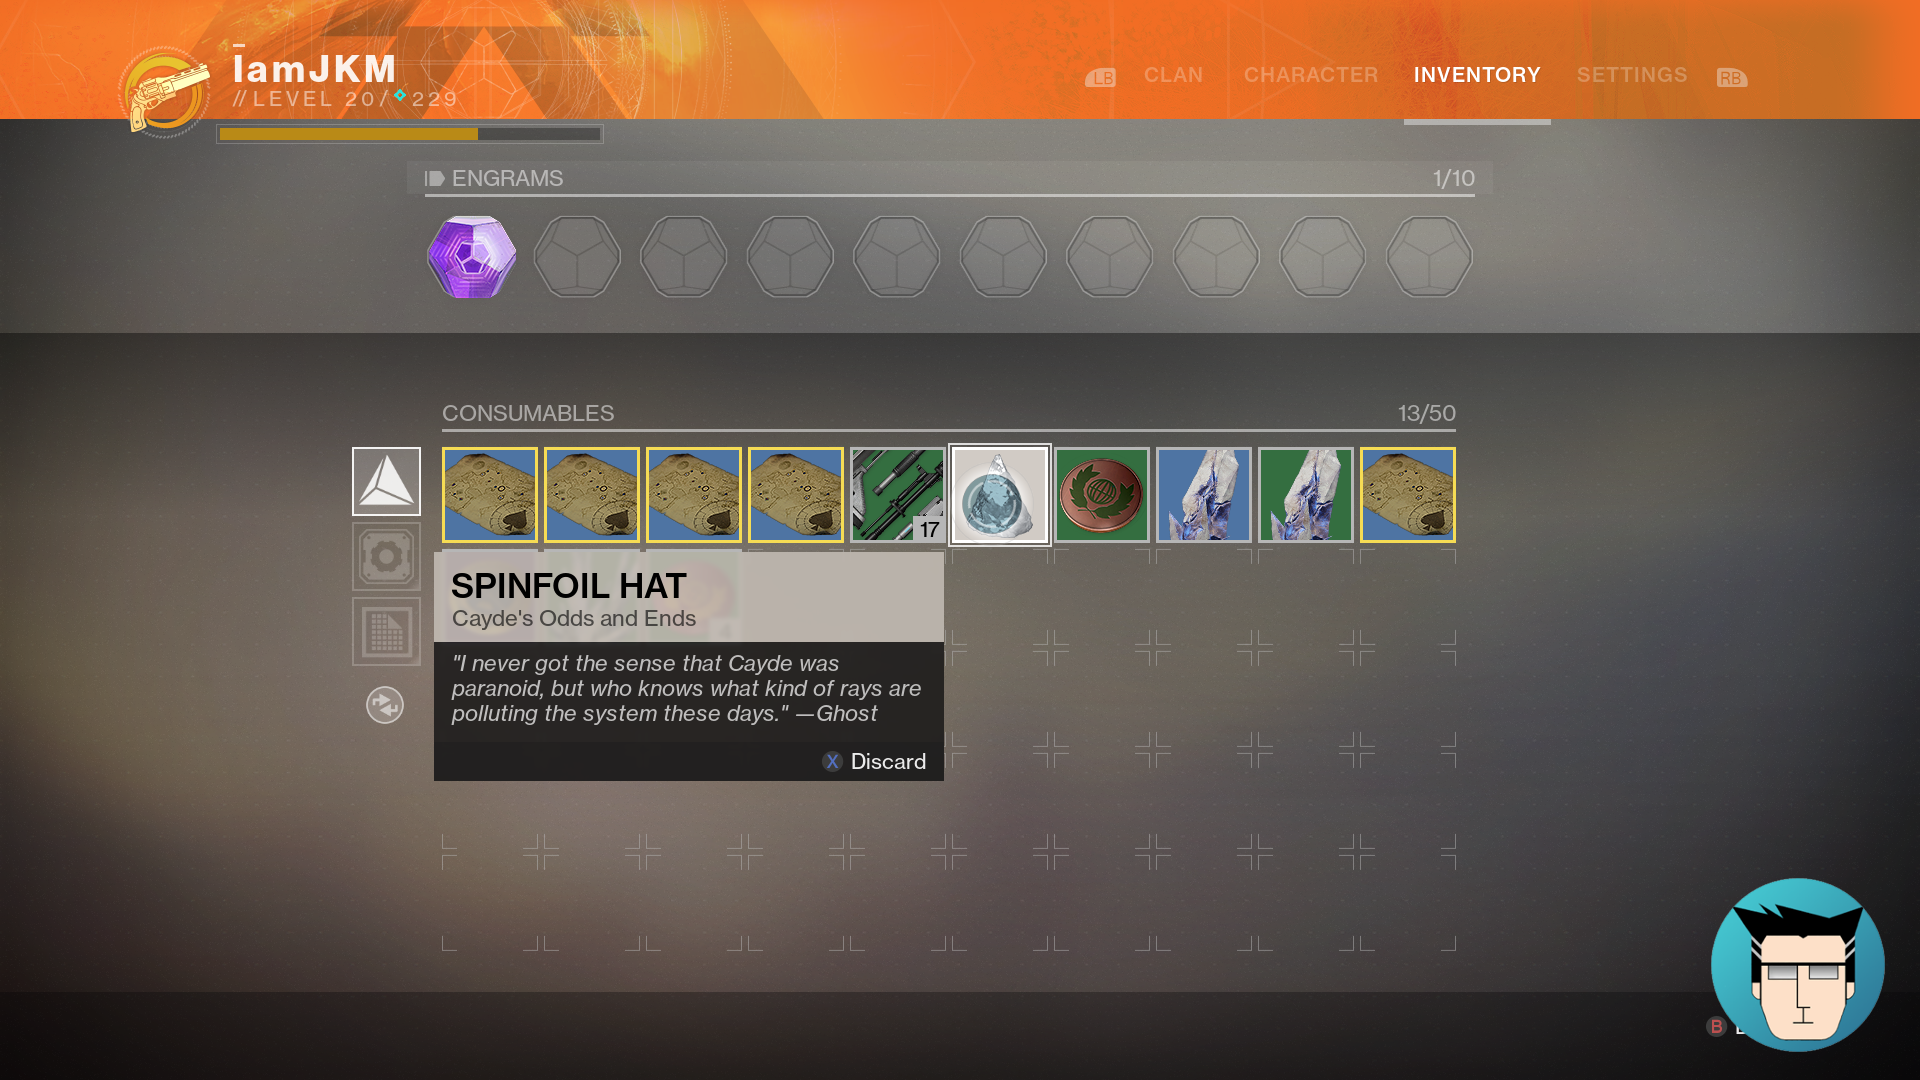 Cayde's Odds and Ends | Spinfoil Hat